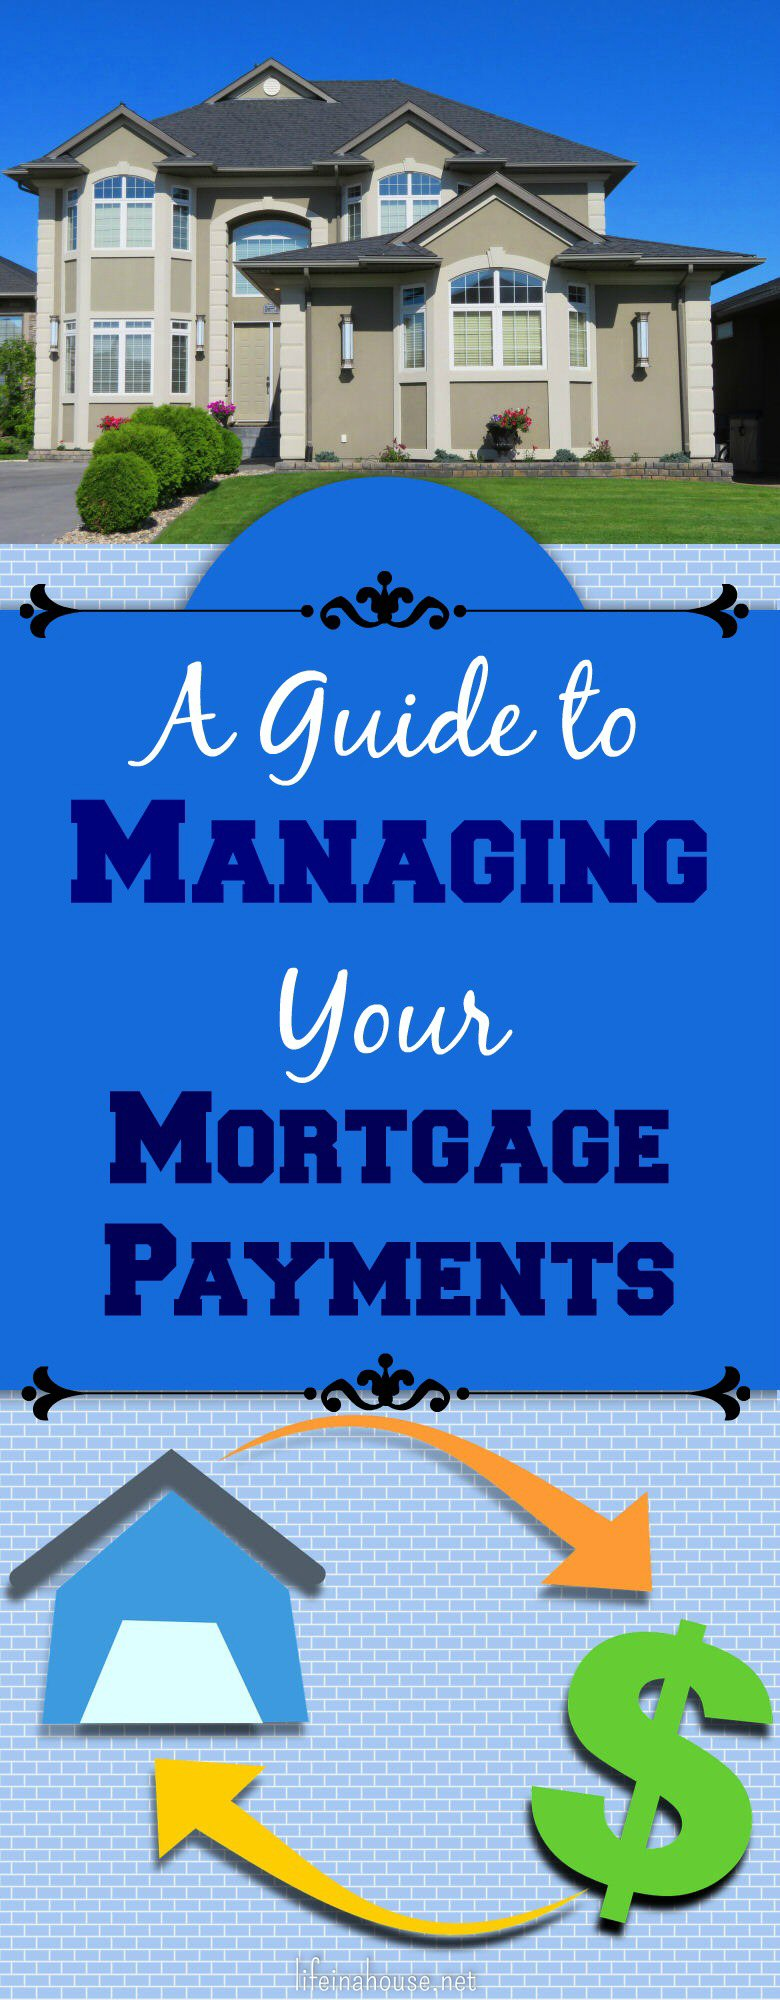 A Guide to Managing Your Mortgage Payments